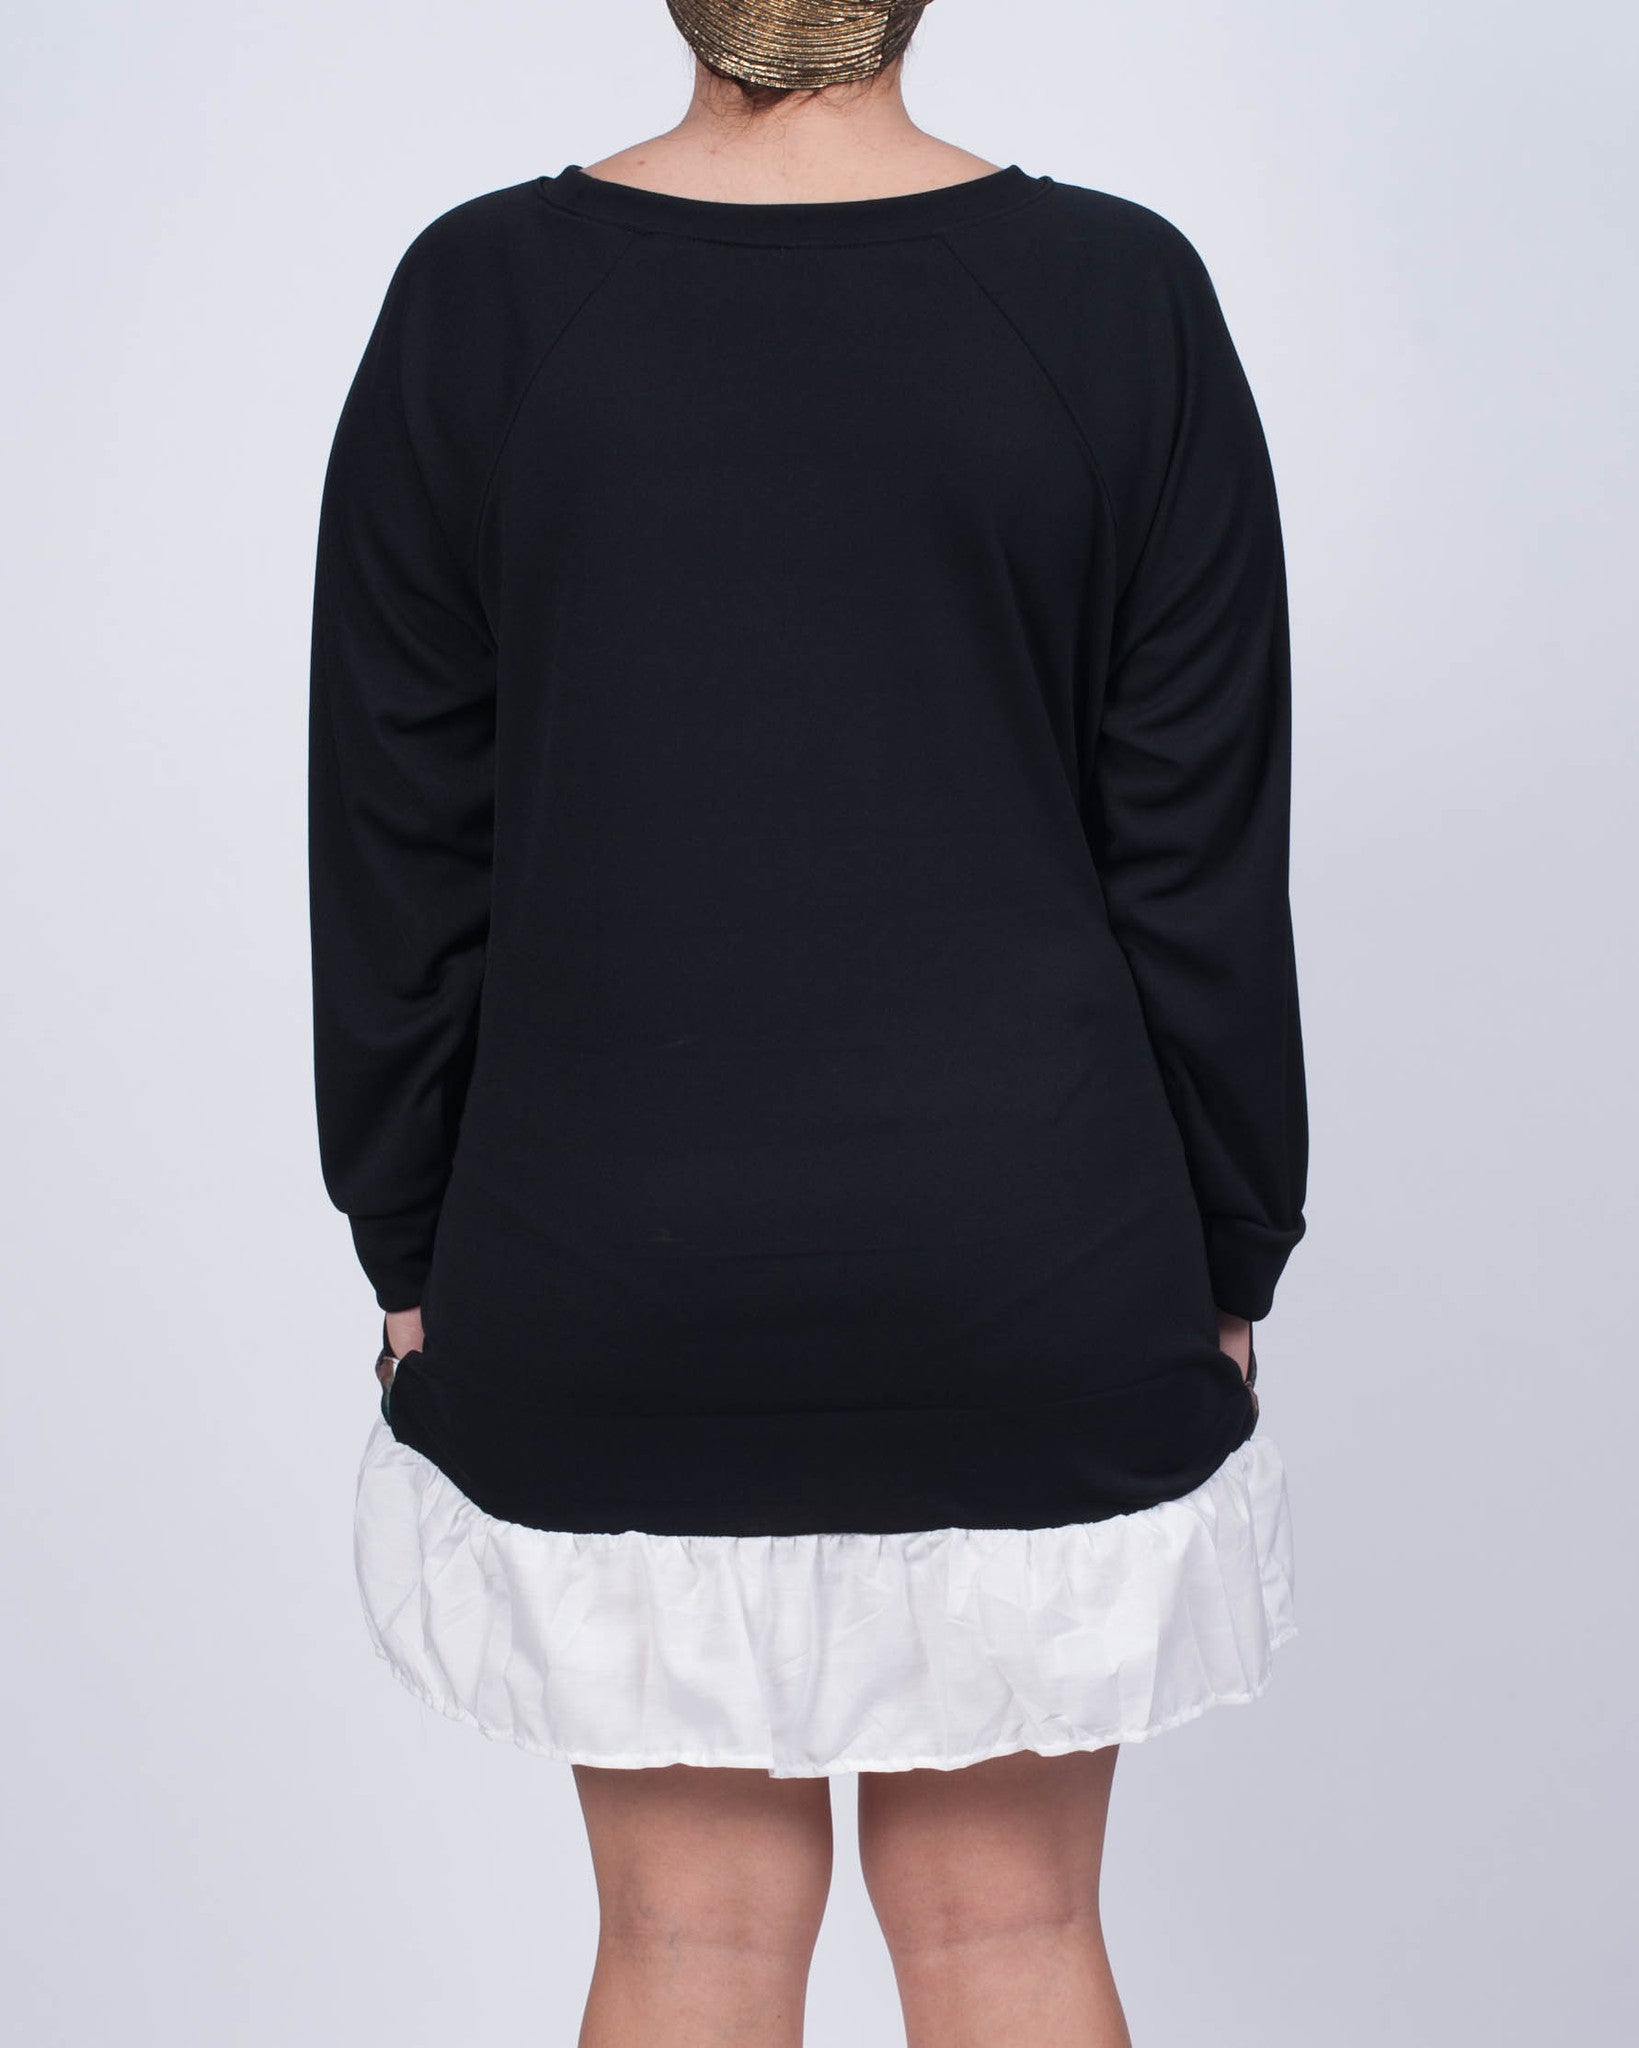 Demure Kitty Cup Sweatshirt Dress